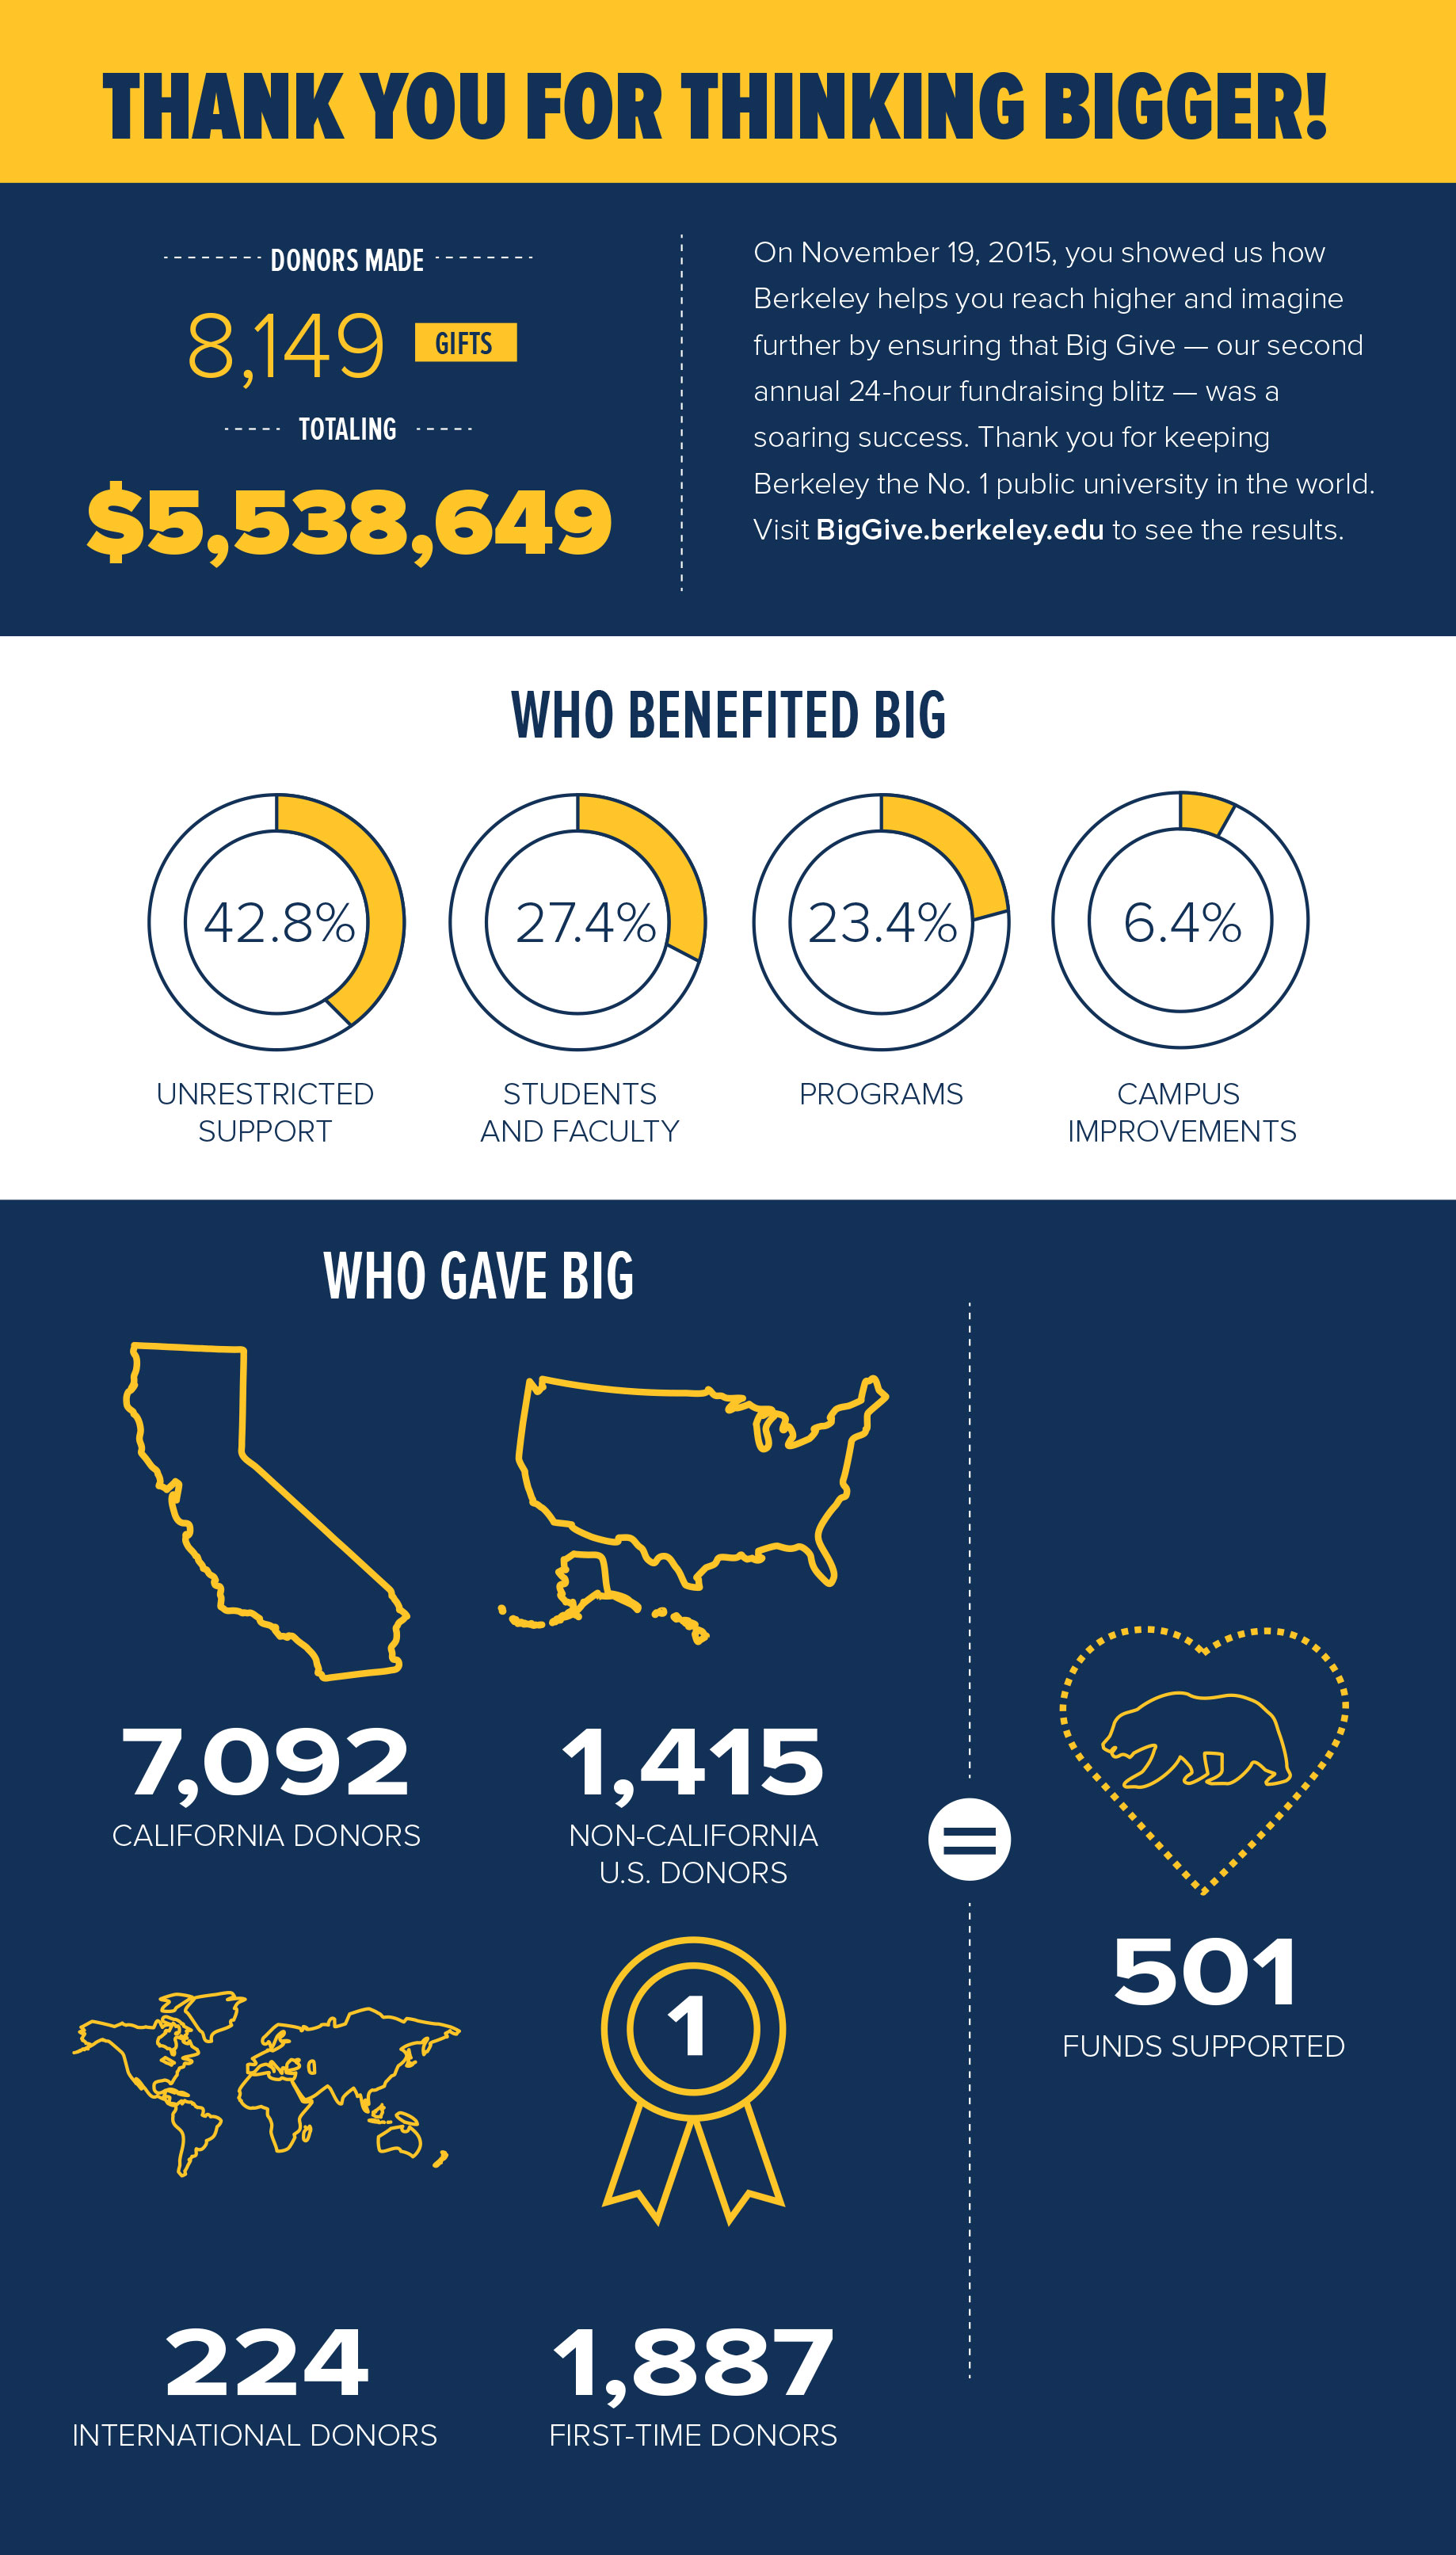 Several graphic illustrations how much was raised, who benefited, and who gave.